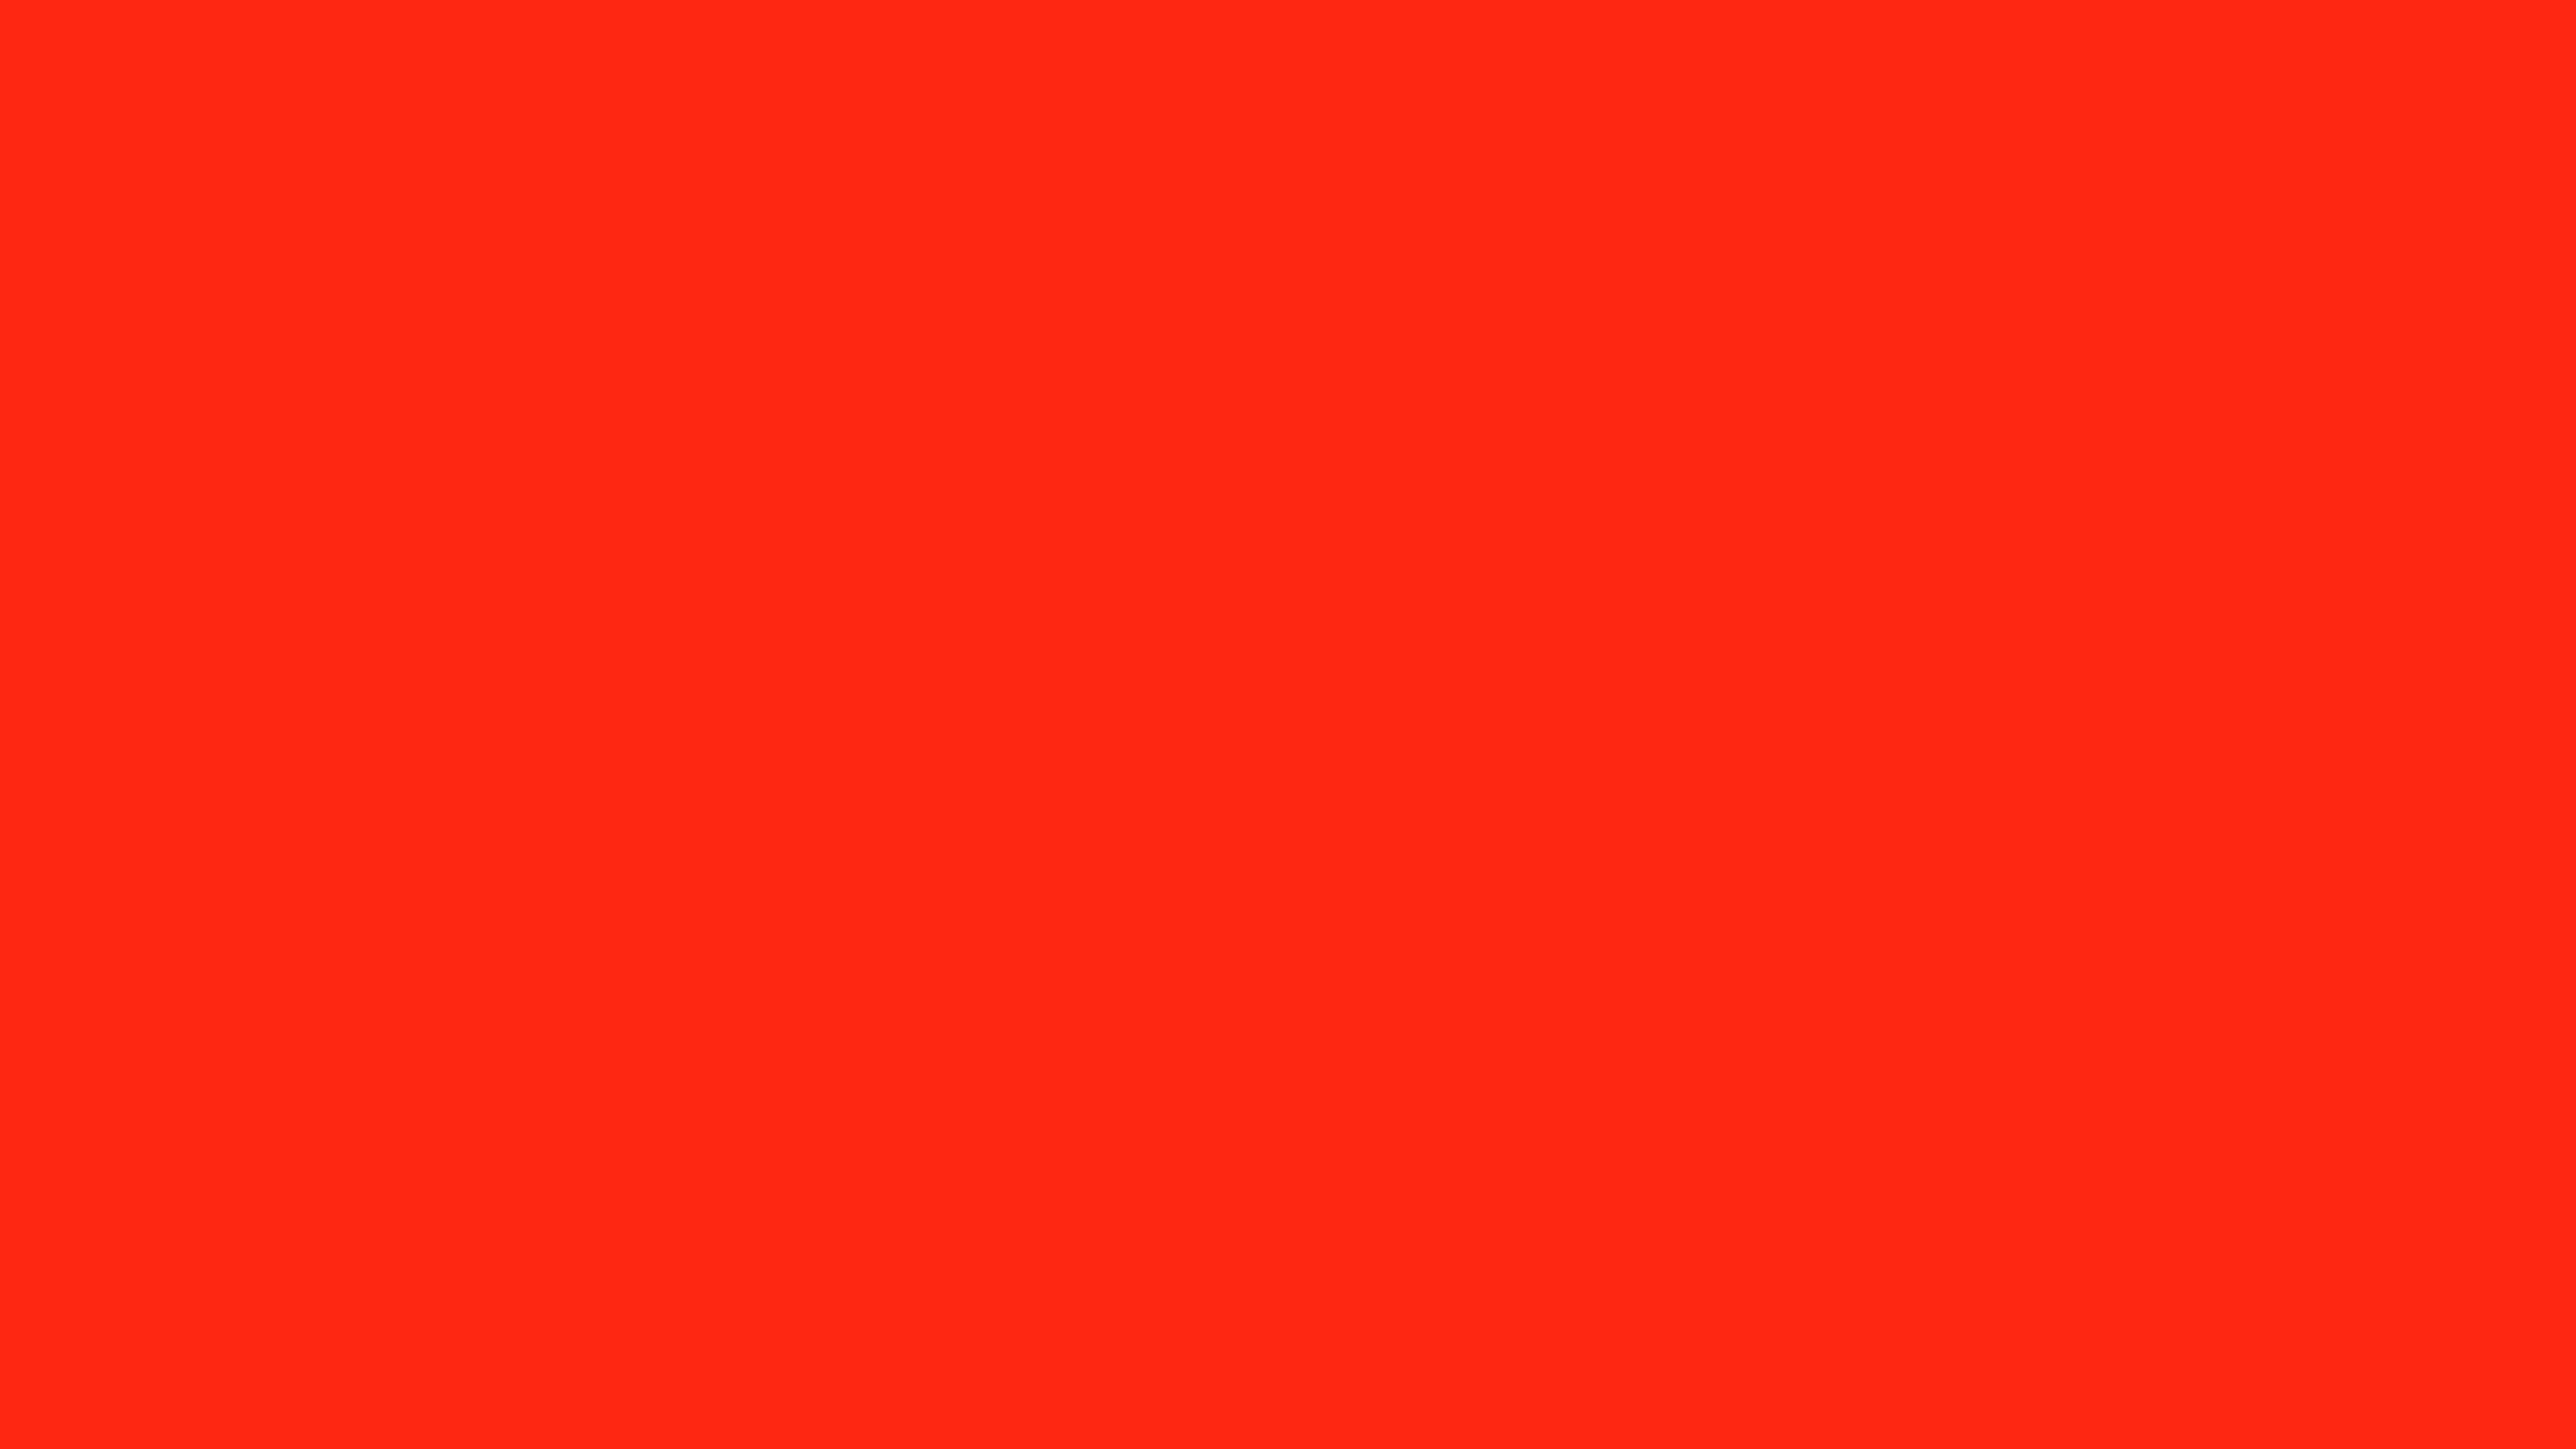 4096x2304 Red RYB Solid Color Background